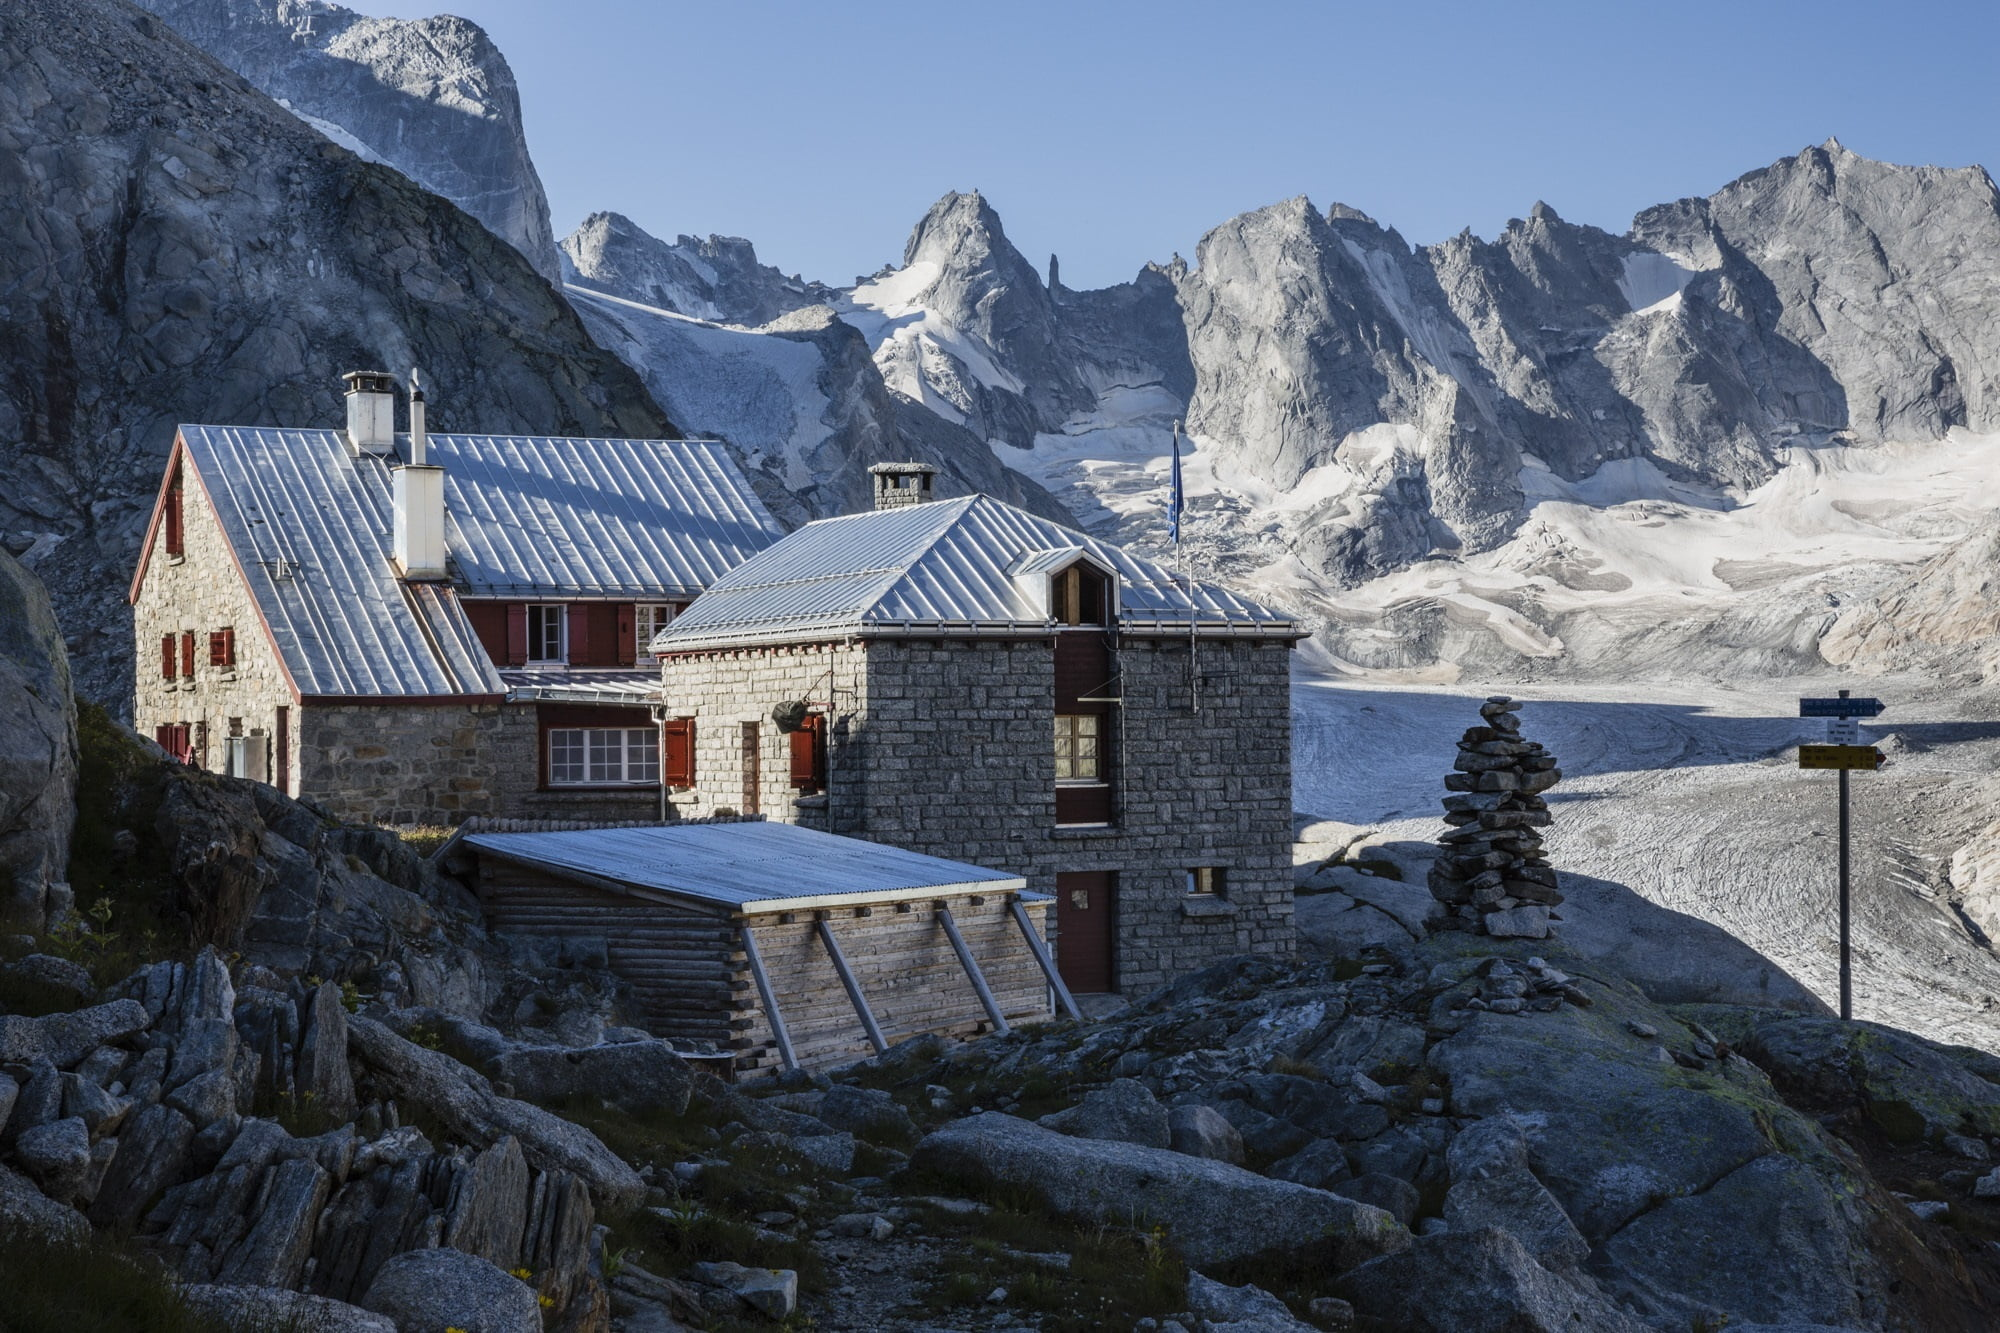 Mountain lodges